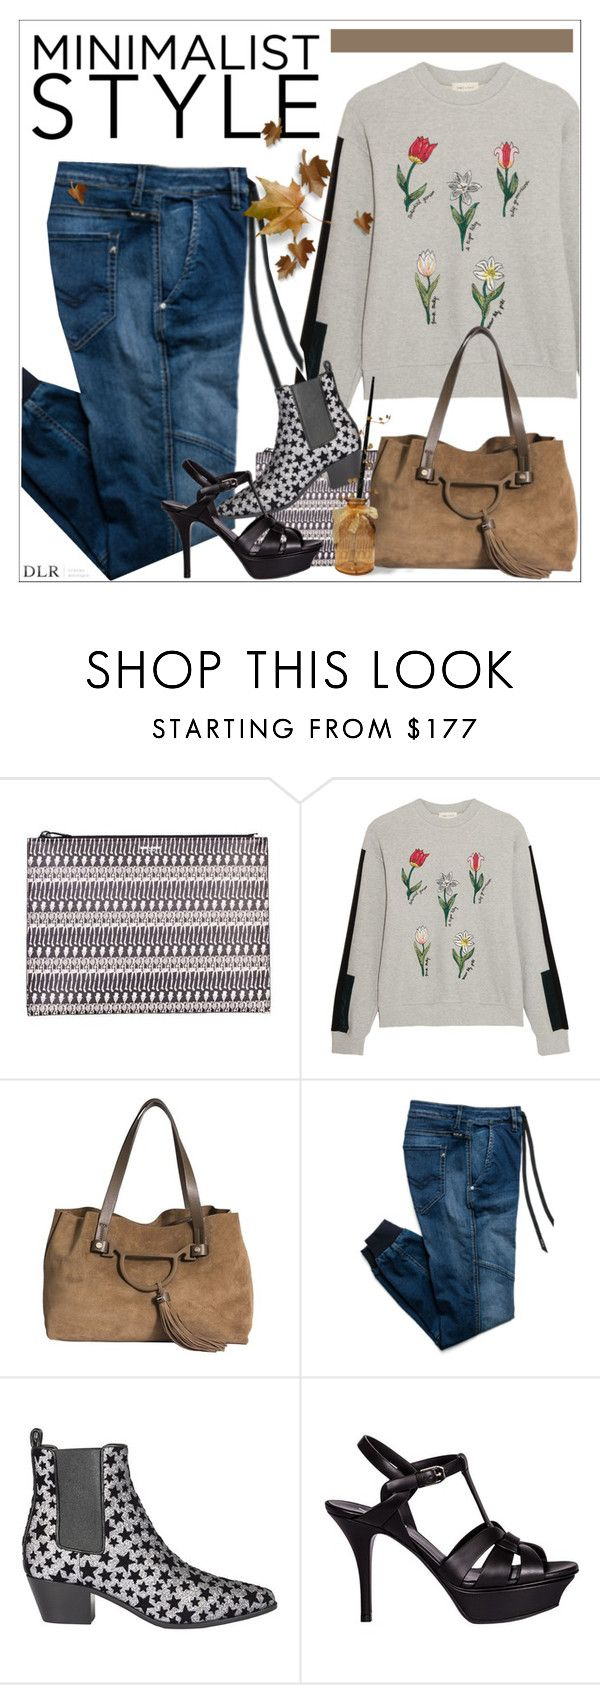 """DLRBOUTIQUE.COM"" by mirachu-1 on Polyvore featuring Yves Saint Laurent, Steve J & Yoni P, Borbonese and Replay"